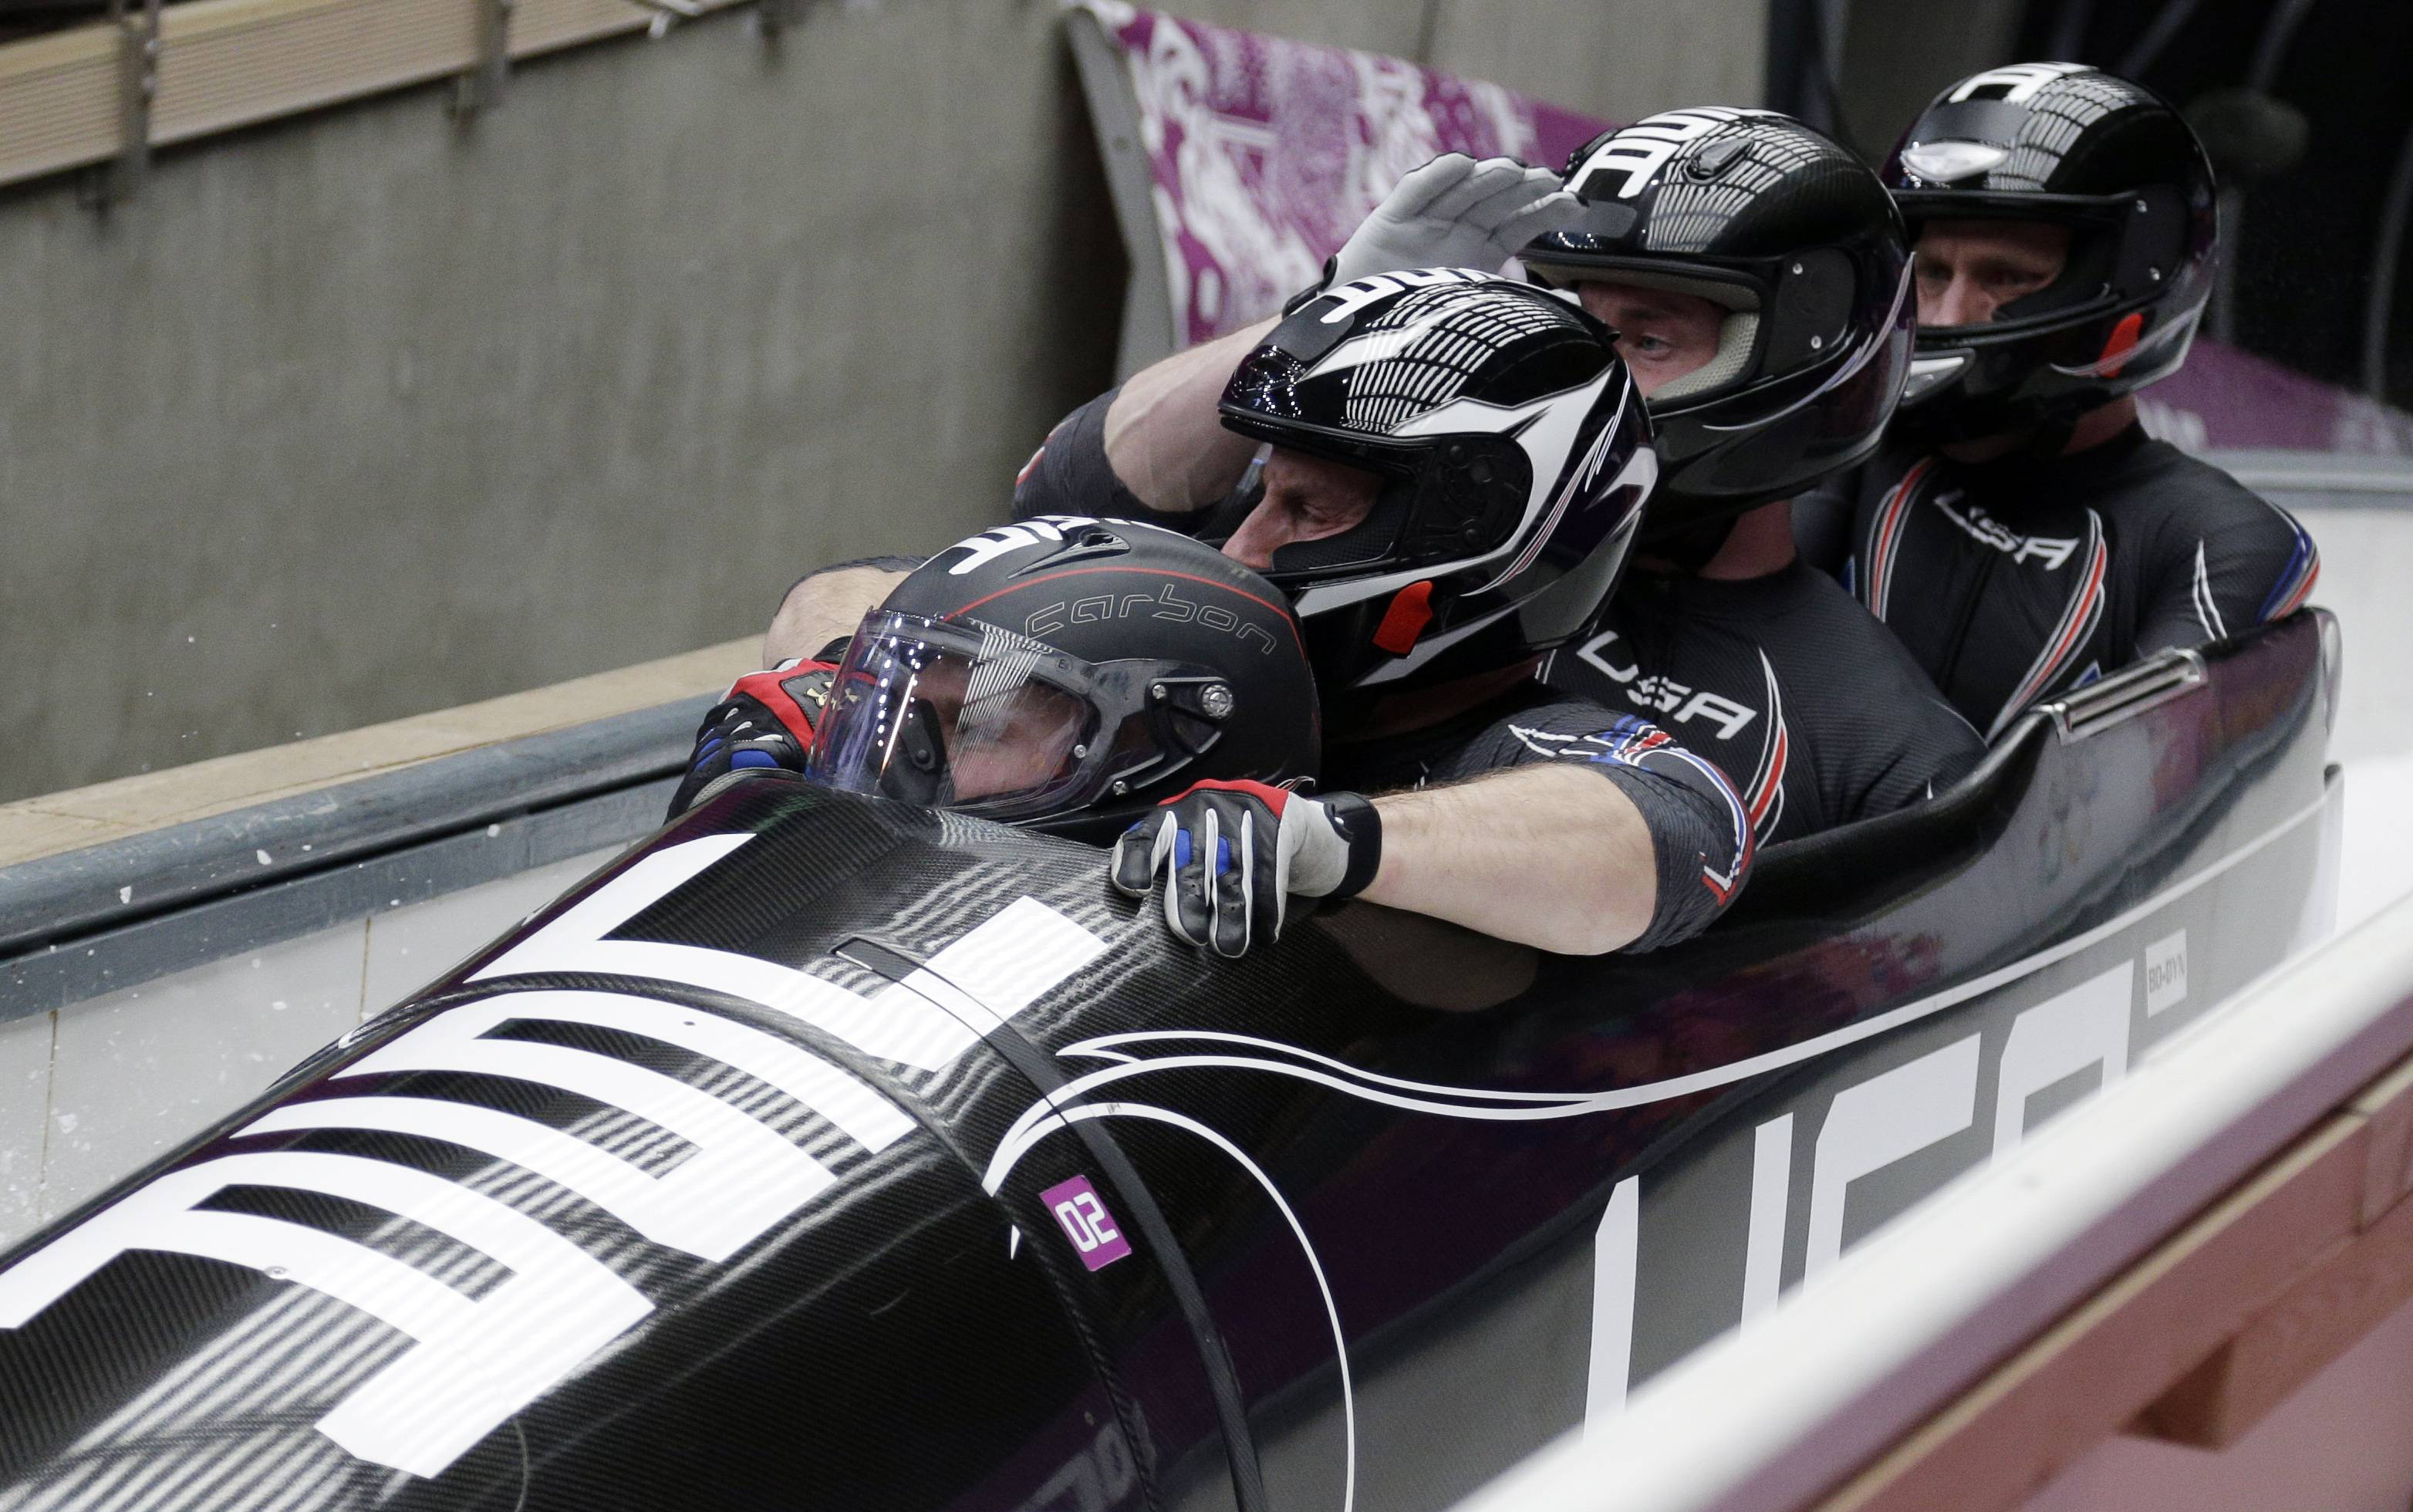 The team from the United States USA-1, with Steven Holcomb, Curtis Tomasevicz, Steven Langton and Christopher Fogt, brake in the finish area after their second run during the men's four-man bobsled competition at the 2014 Winter Olympics, Saturday, Feb. 22, 2014, in Krasnaya Polyana, Russia.